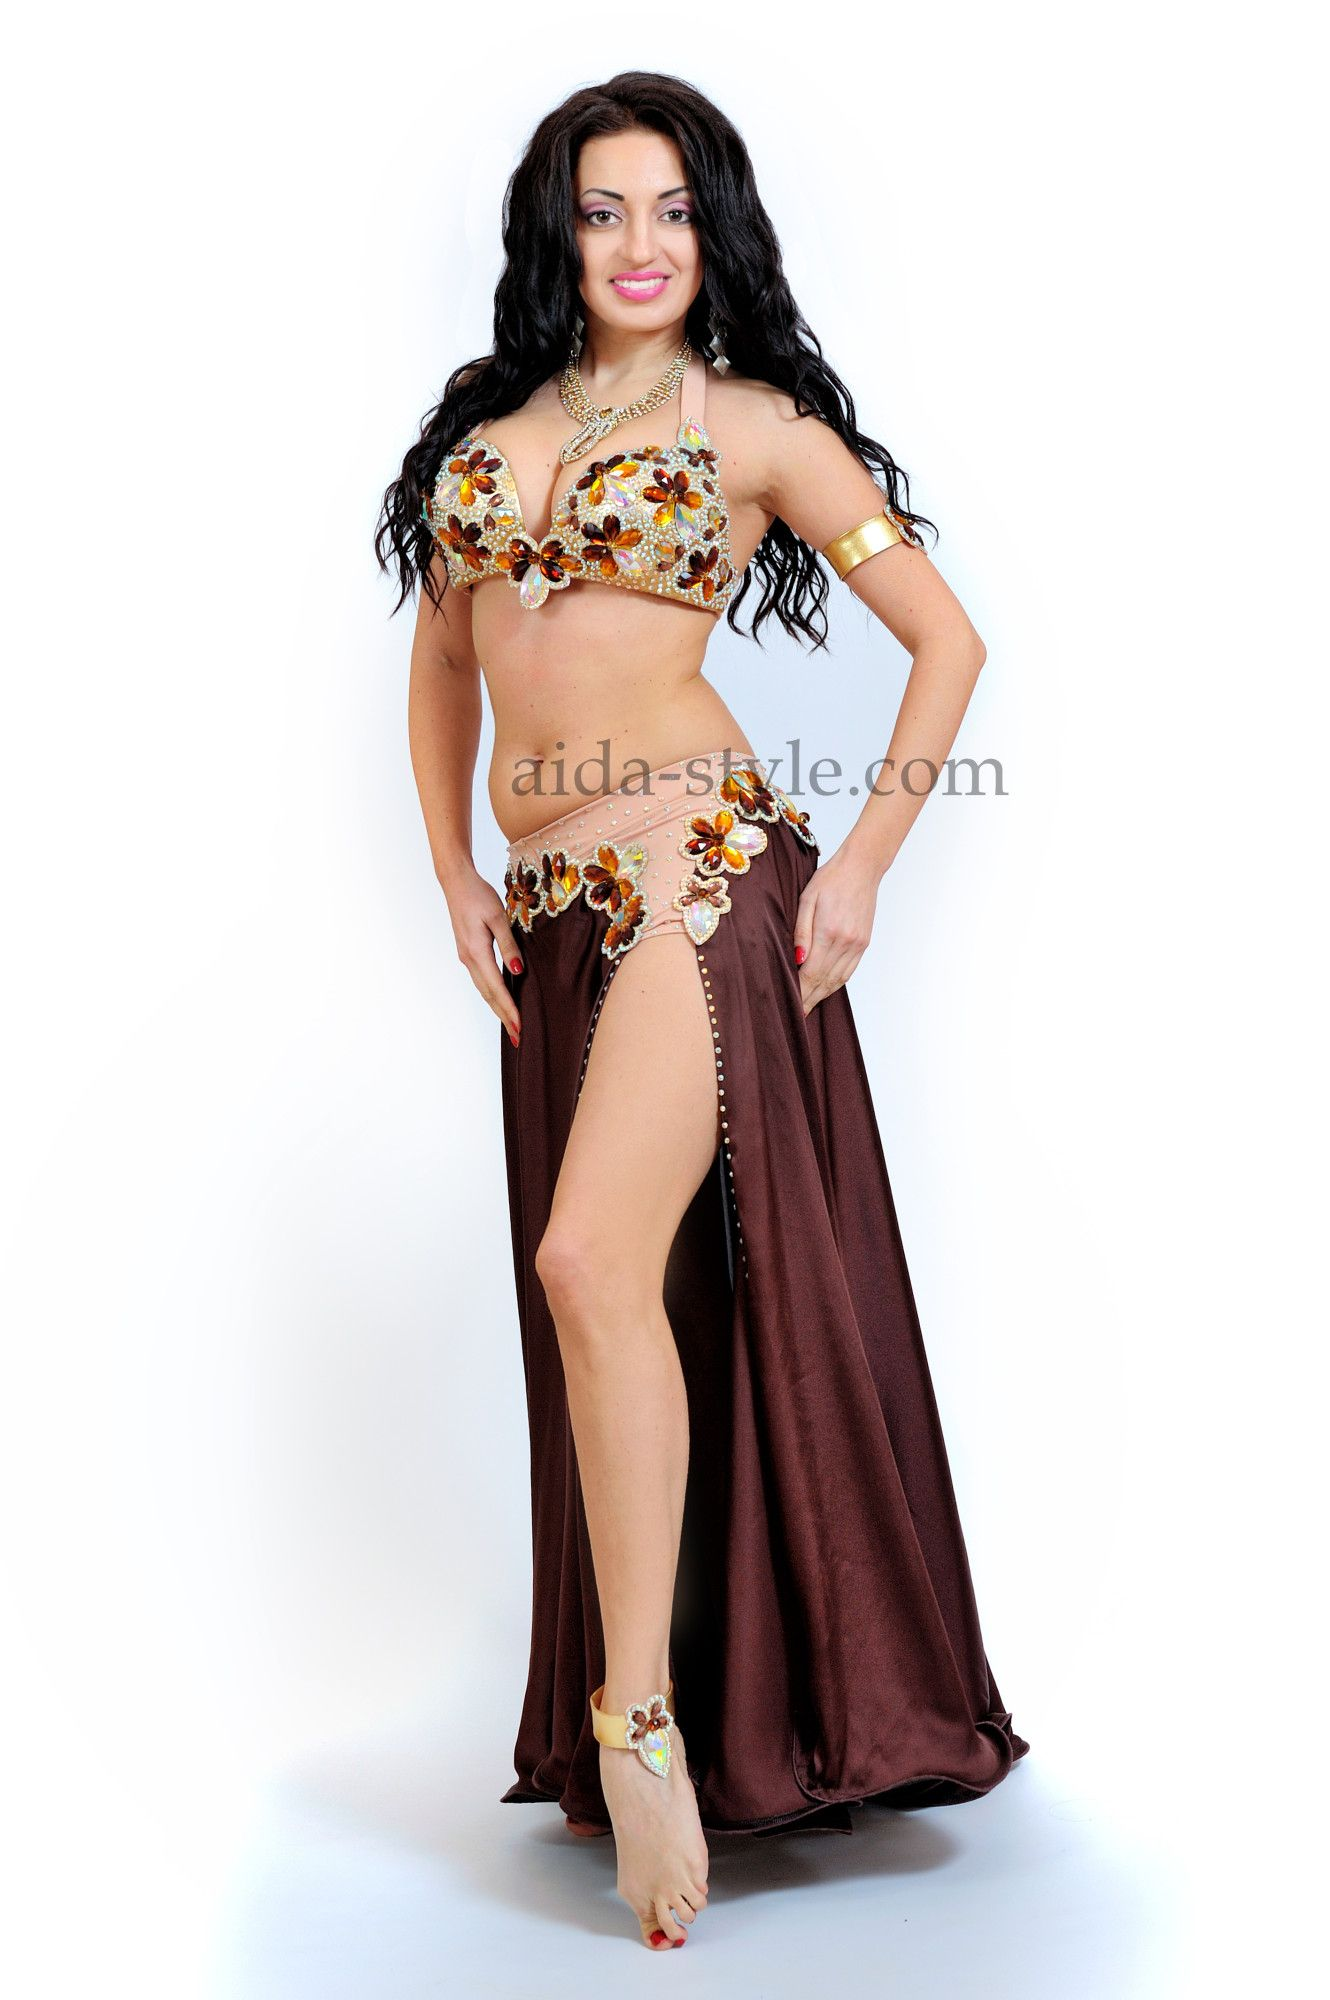 84fb974c084f Beautiful brown professional belly dance costume decorated with golden  stones